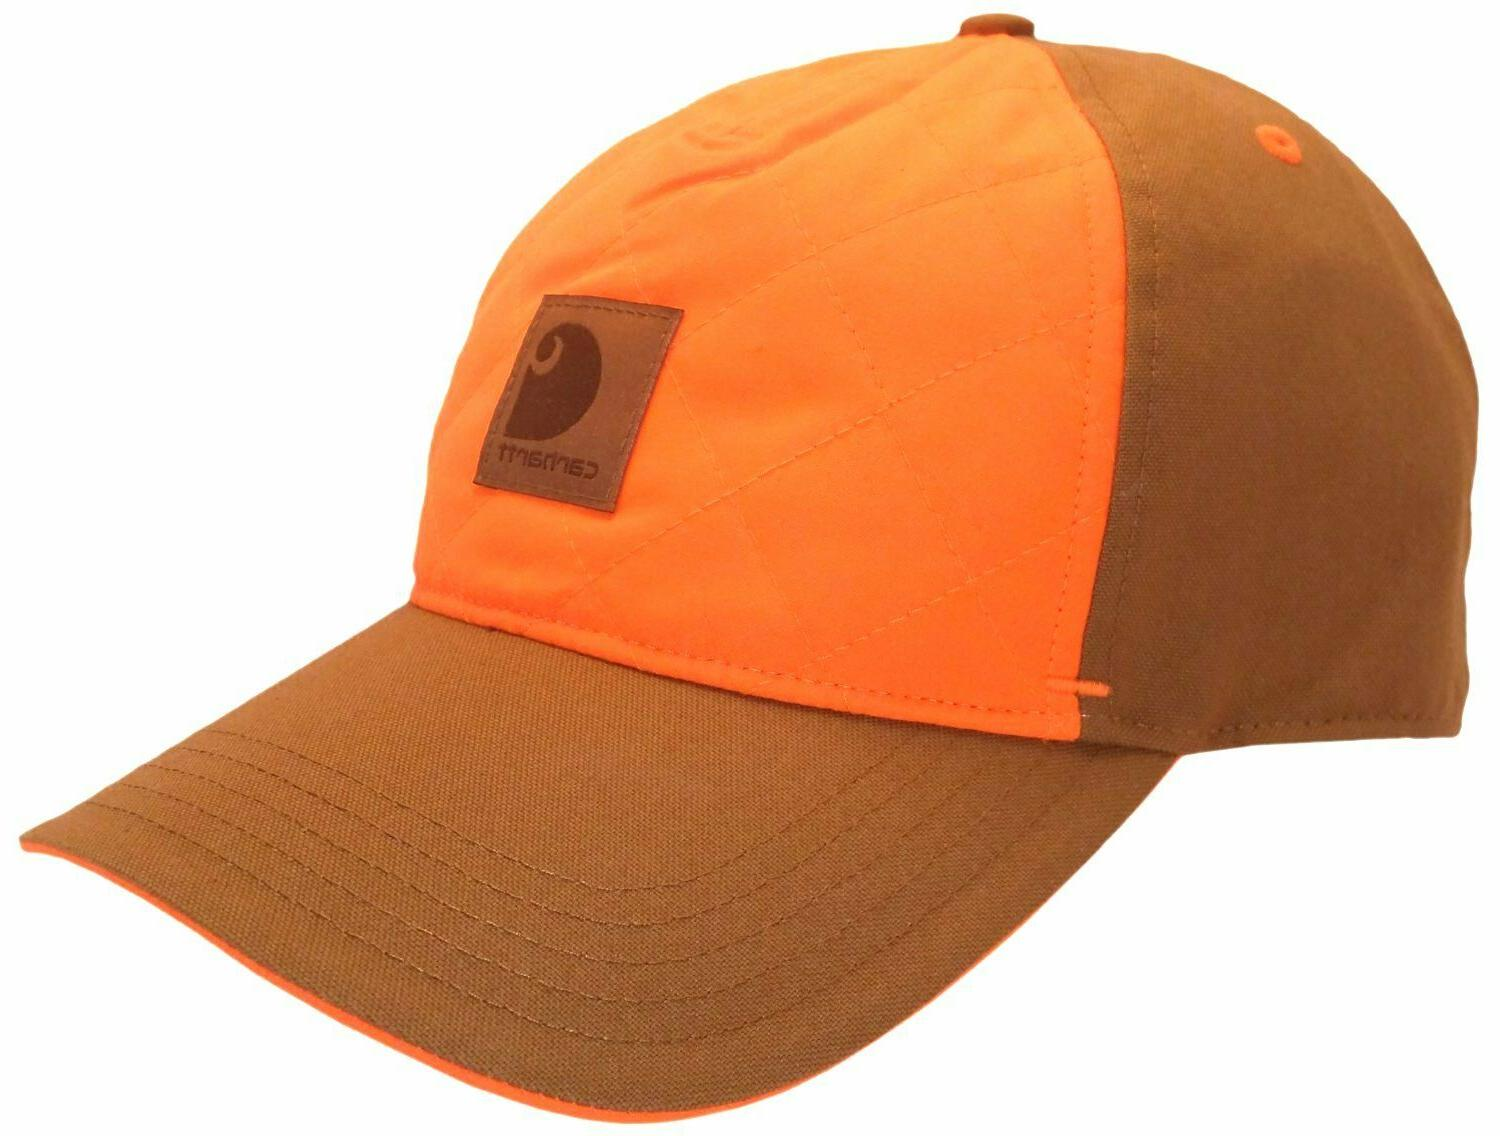 new mens quilted upland hat cap hunting